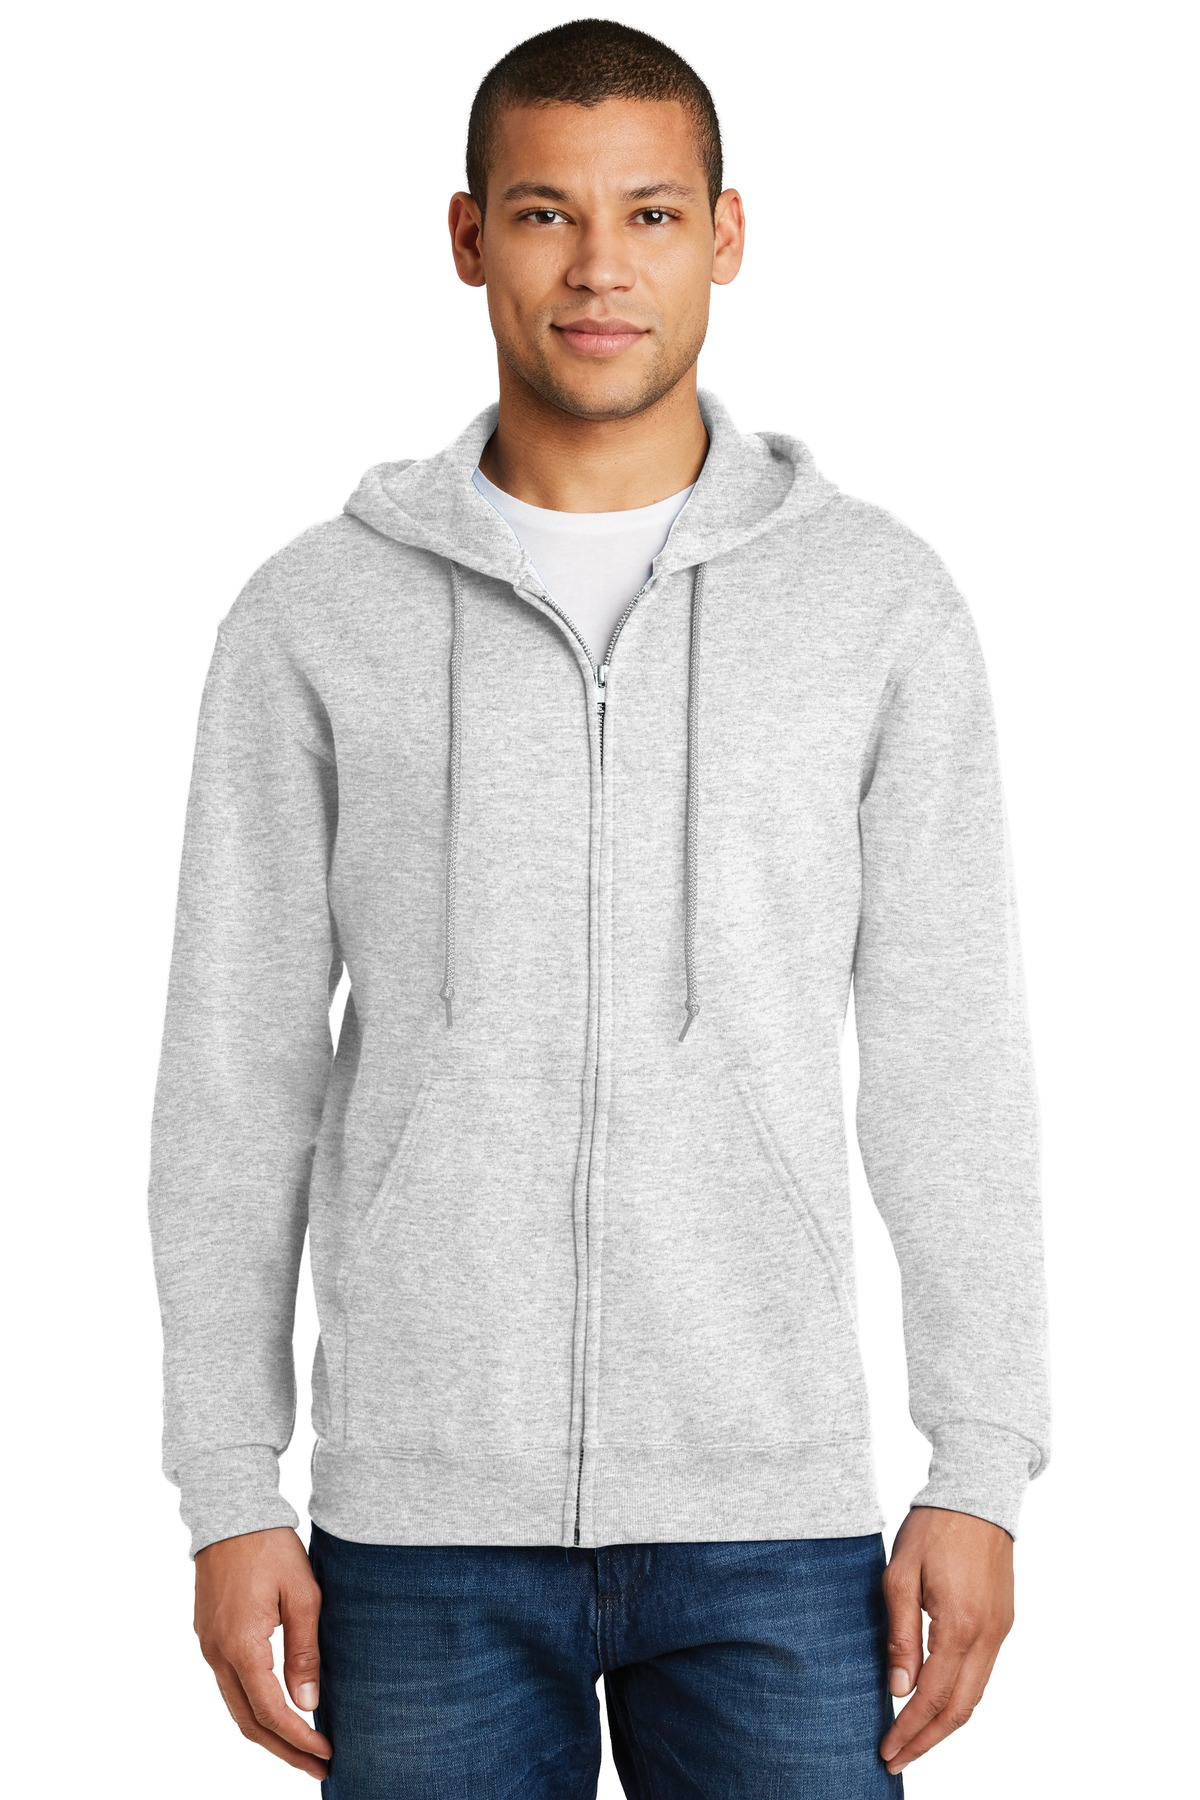 JERZEES ®  - NuBlend ®  Full-Zip Hooded Sweatshirt.  993M - Ash